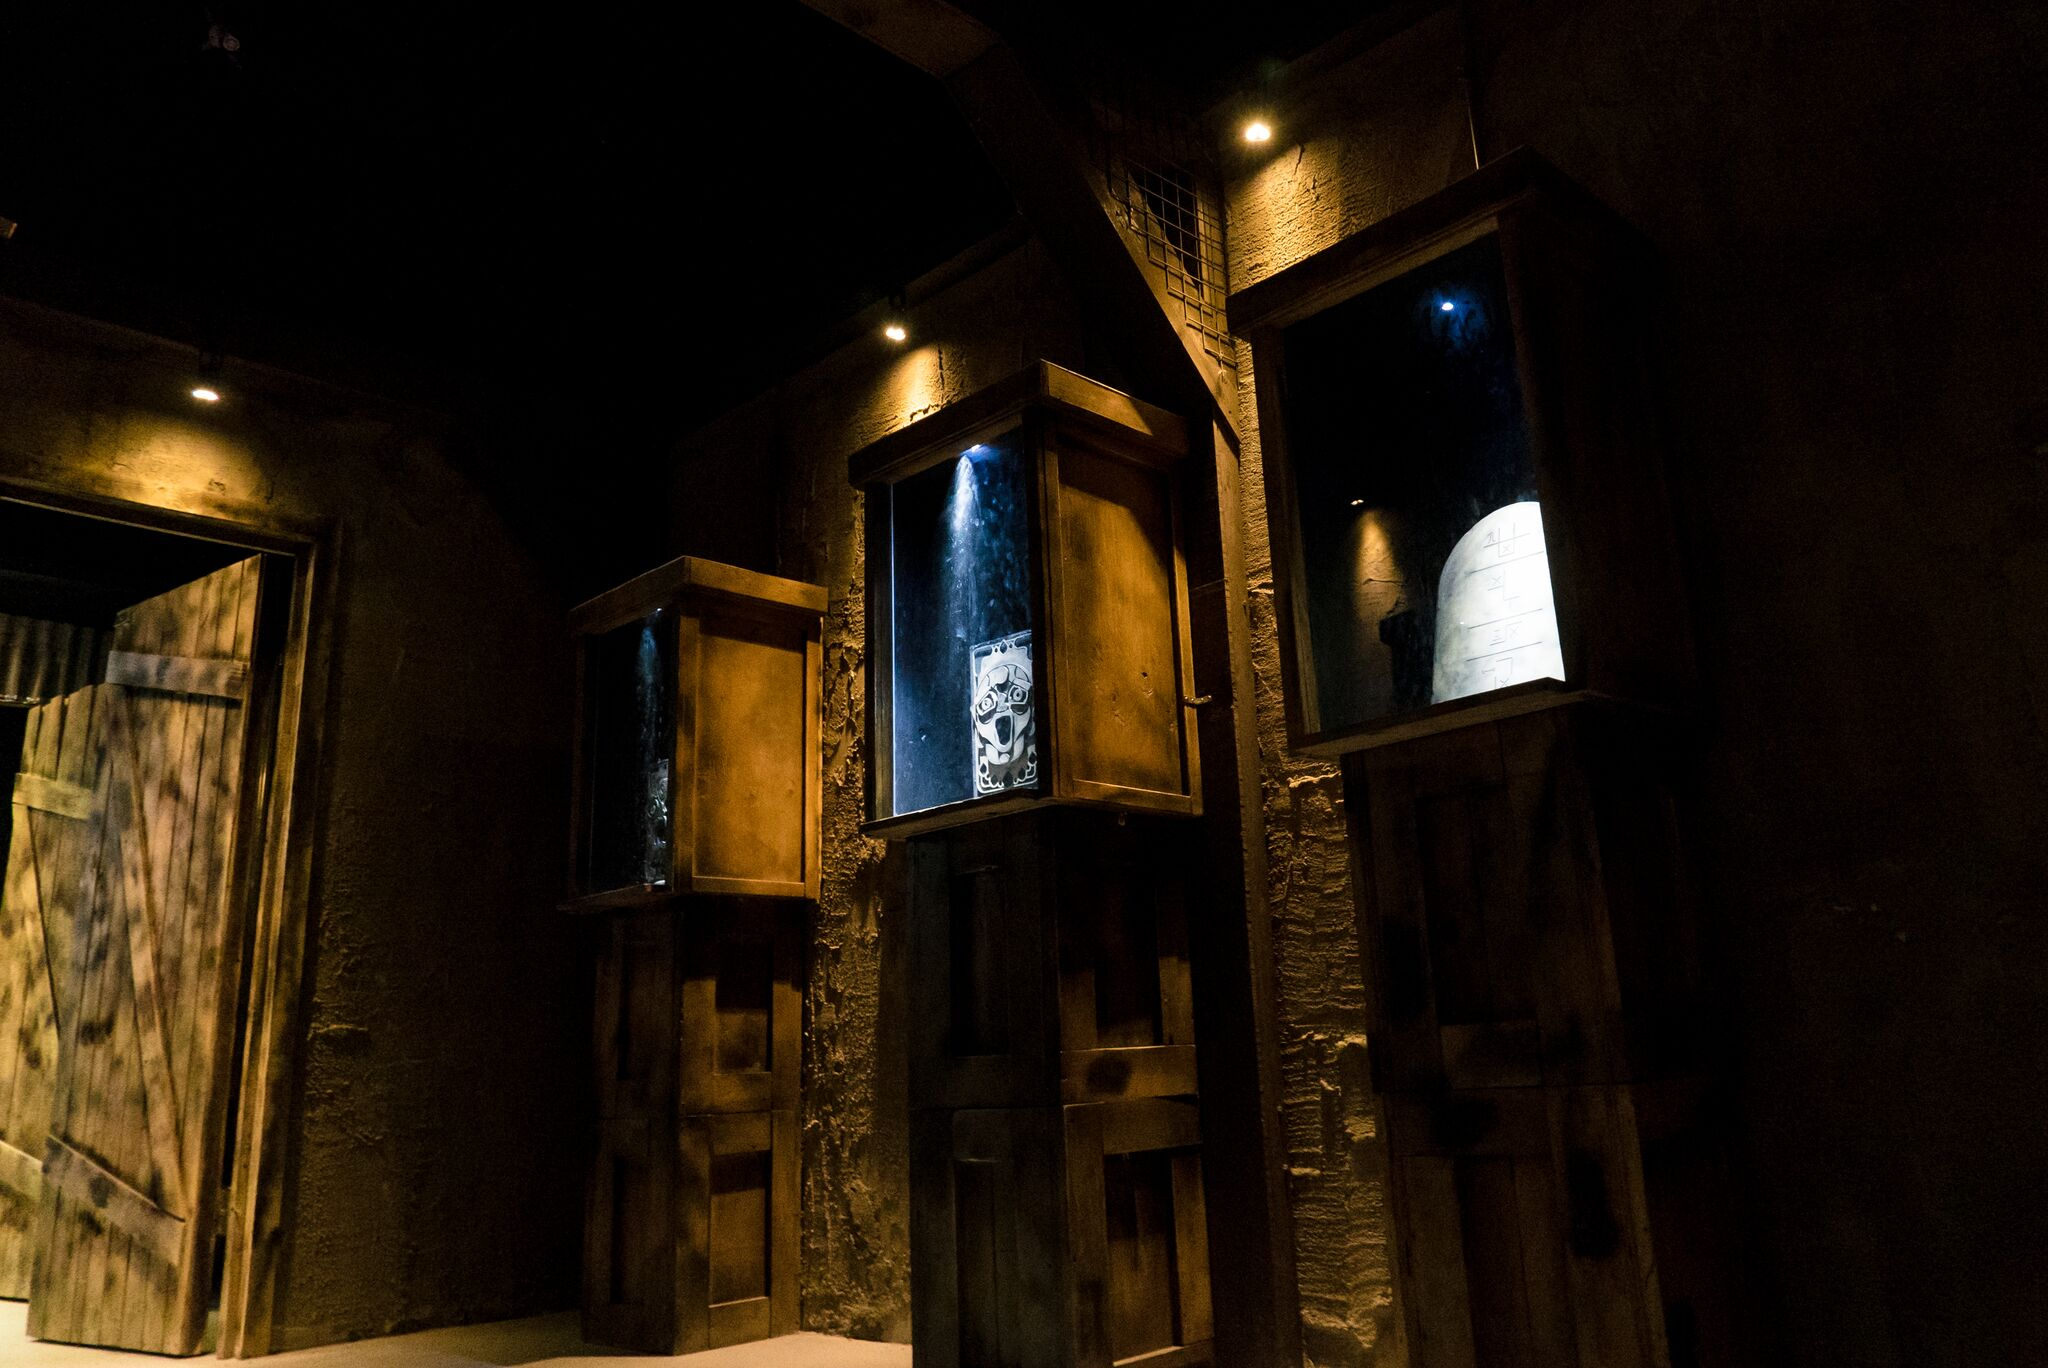 Immersive Rooms - We do our best to push the limits of what an escape room can be by utilizing immersive set design, theatrical special effects and professionally engineered tech - all of which are built and maintained by our on-site team to ensure the best possible experience